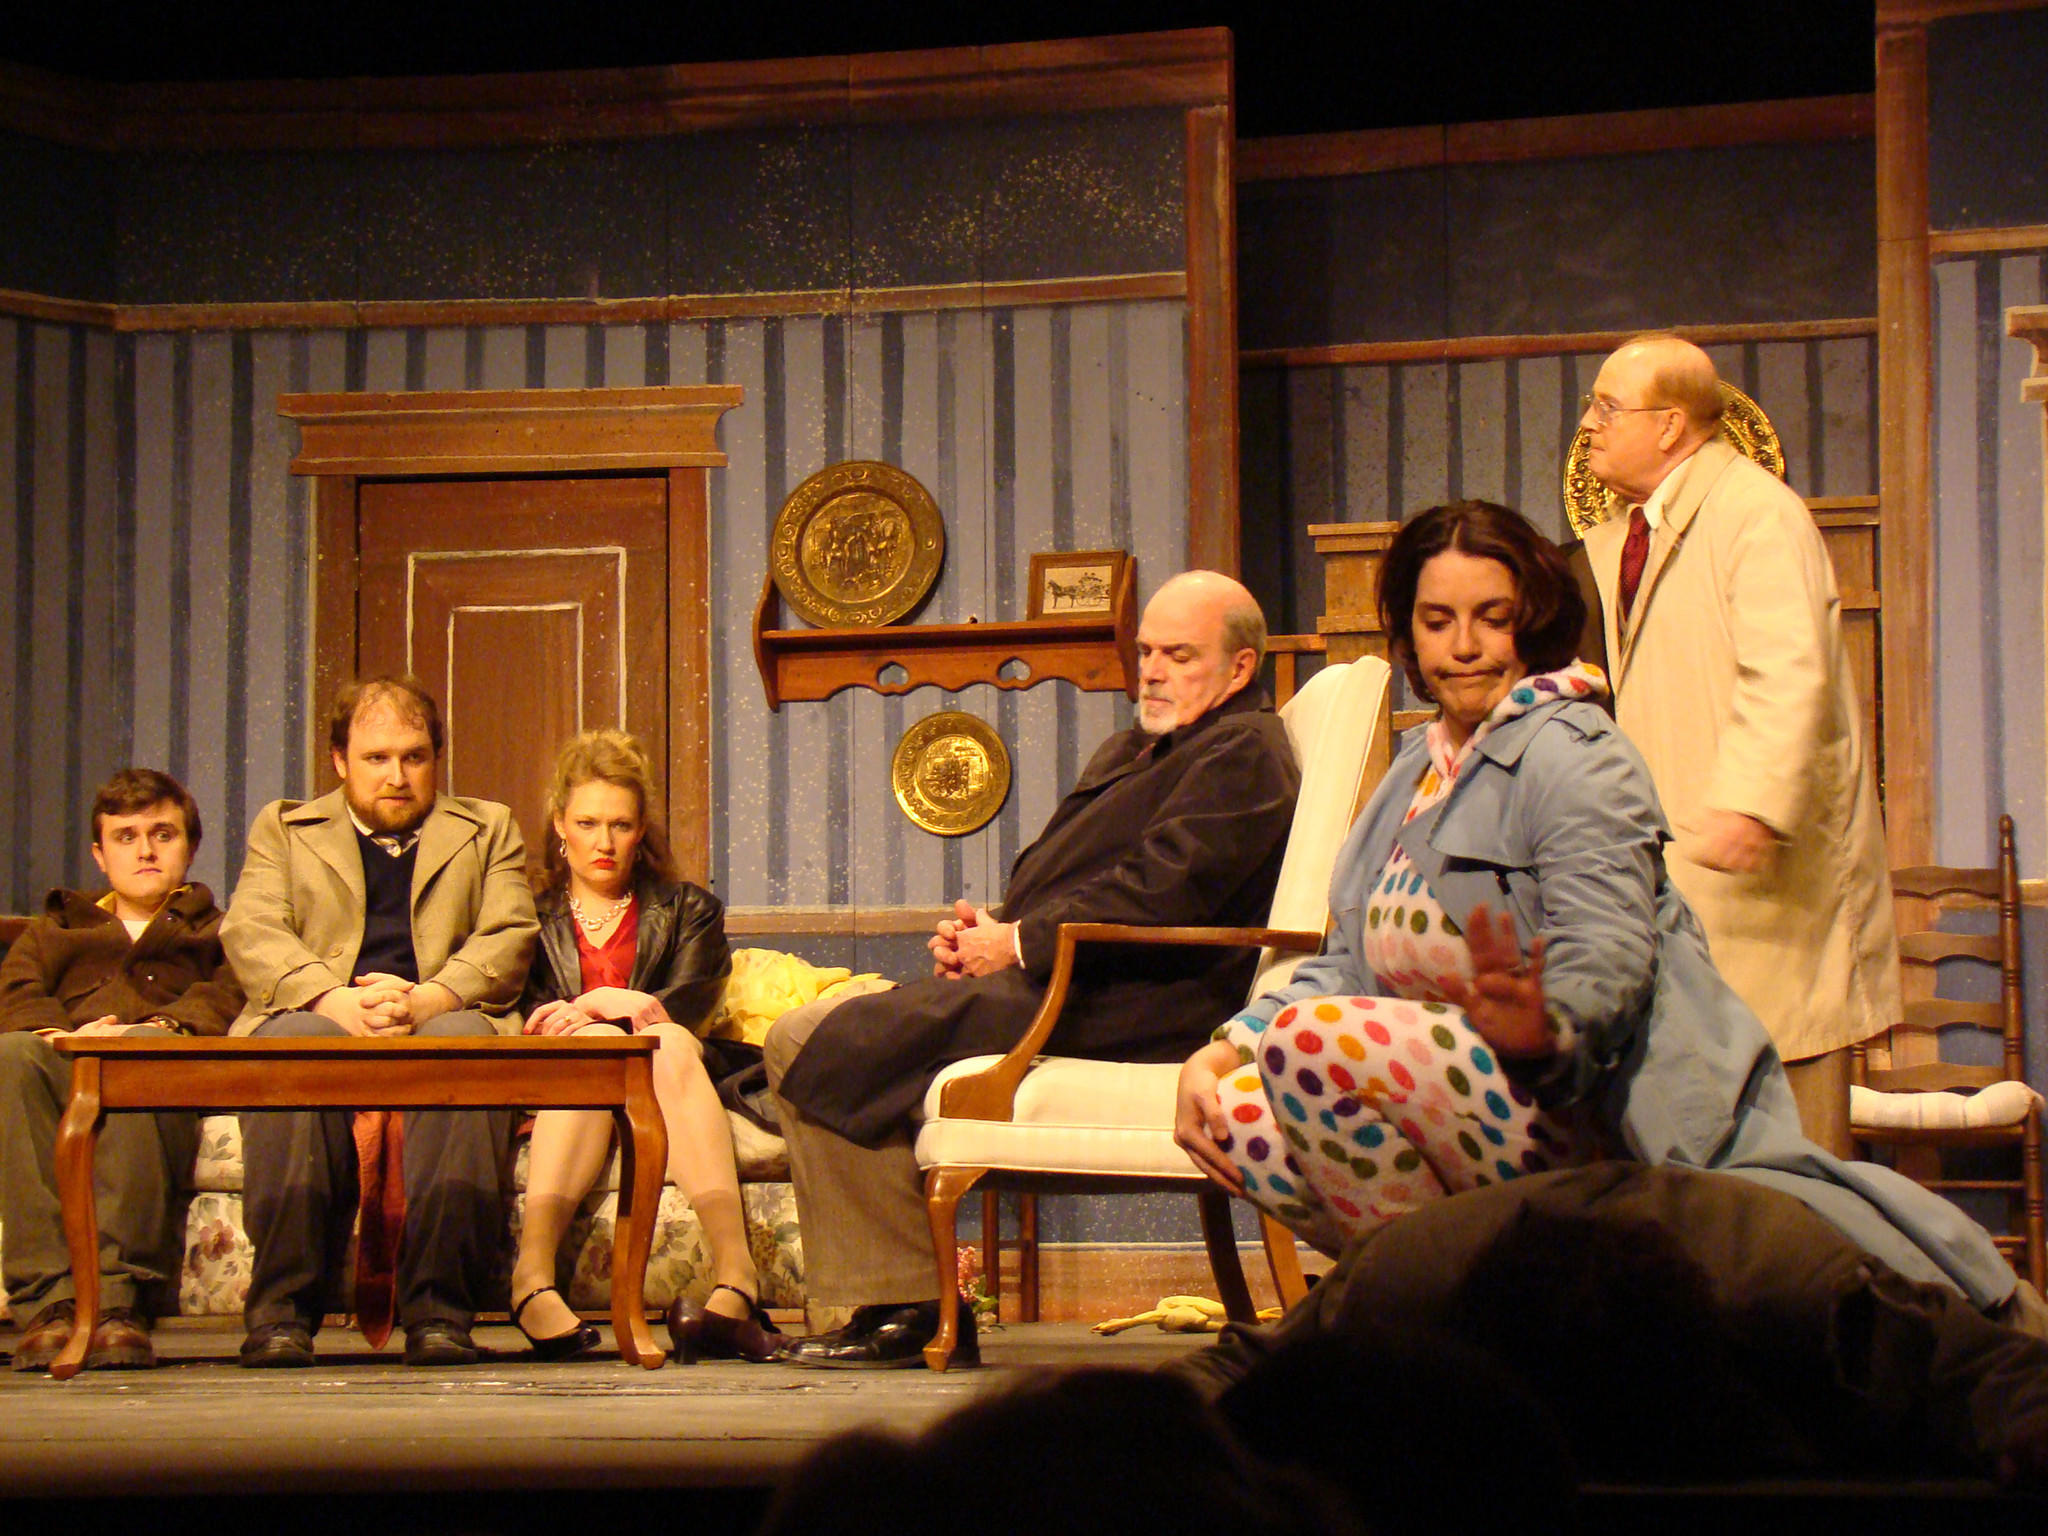 From left, Zak Zeeks as Bill the Taxi Driver, John Wakefield as Vic Johnson, Samantha Feikema as Betty Johnson, Michael Dunlop as Detective Davenport, Mary Wakefield as Jean Perkins, and far right Gene Valendo as Henry Perkins in Funny Money, now playing at the Bowie Playhouse. Photo by Bud Johnson for The Baltimore Sun